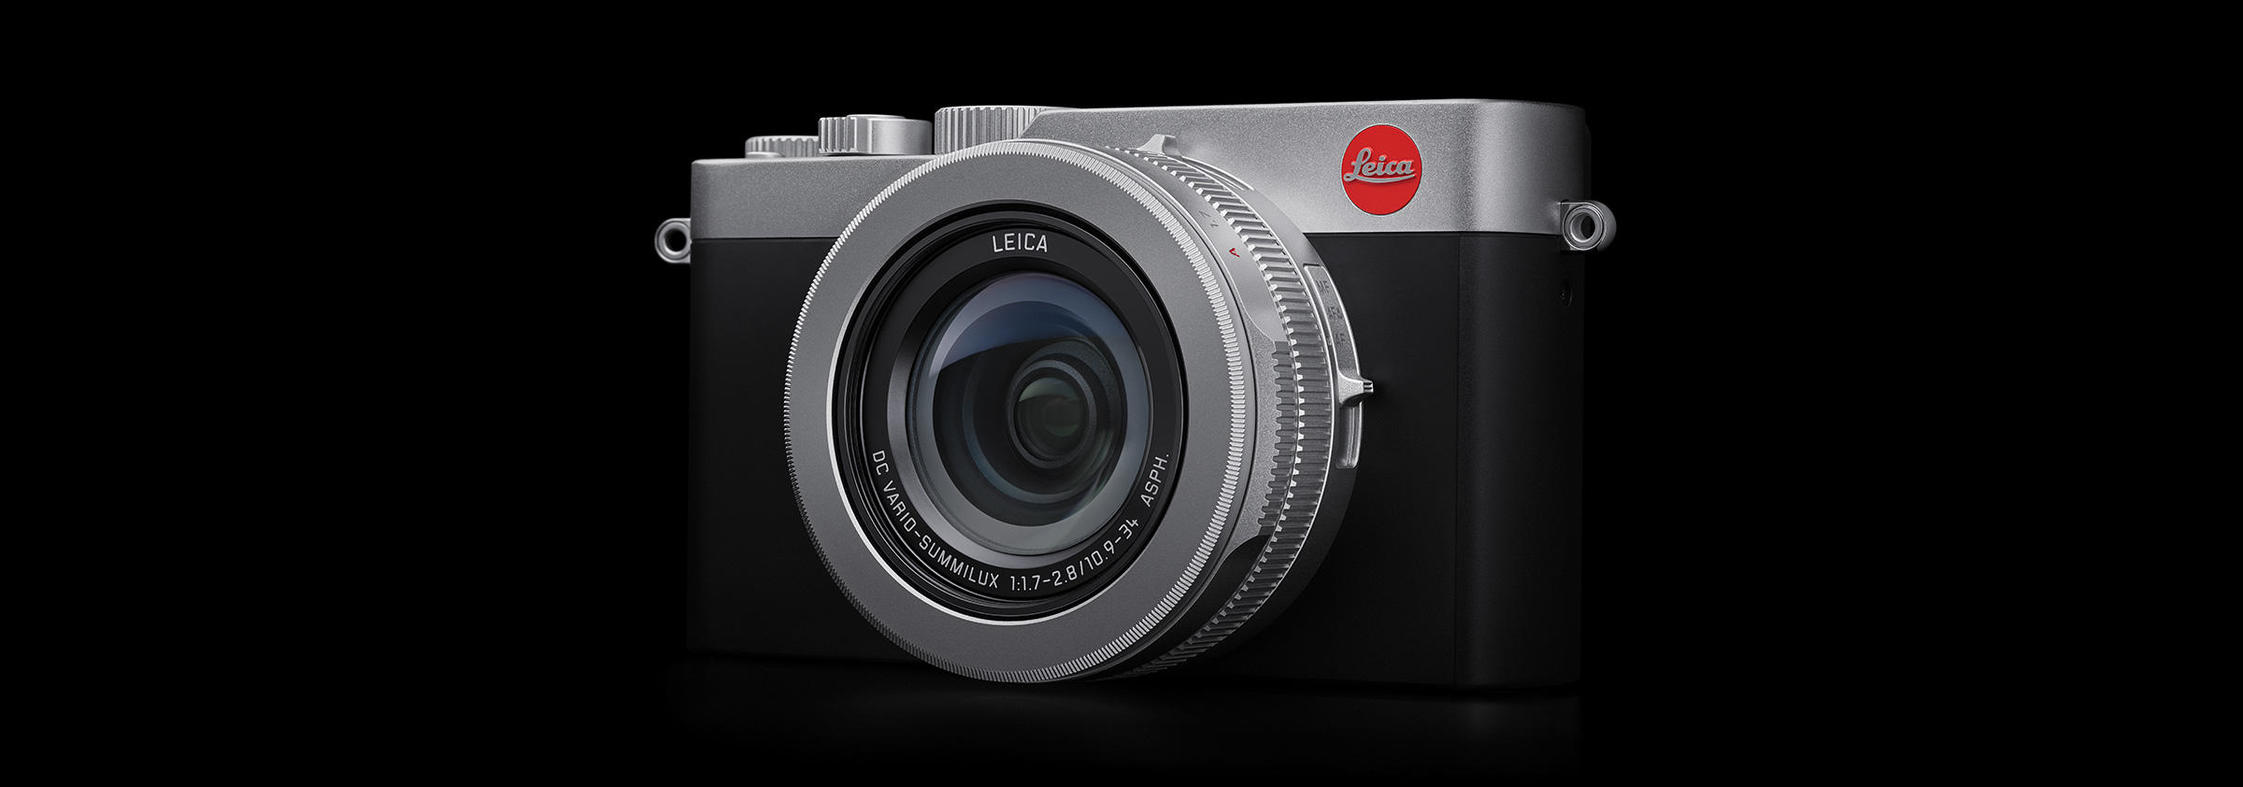 Leica_D_Lux_7_on_black___Header_2400x840_teaser_2400x787.jpg